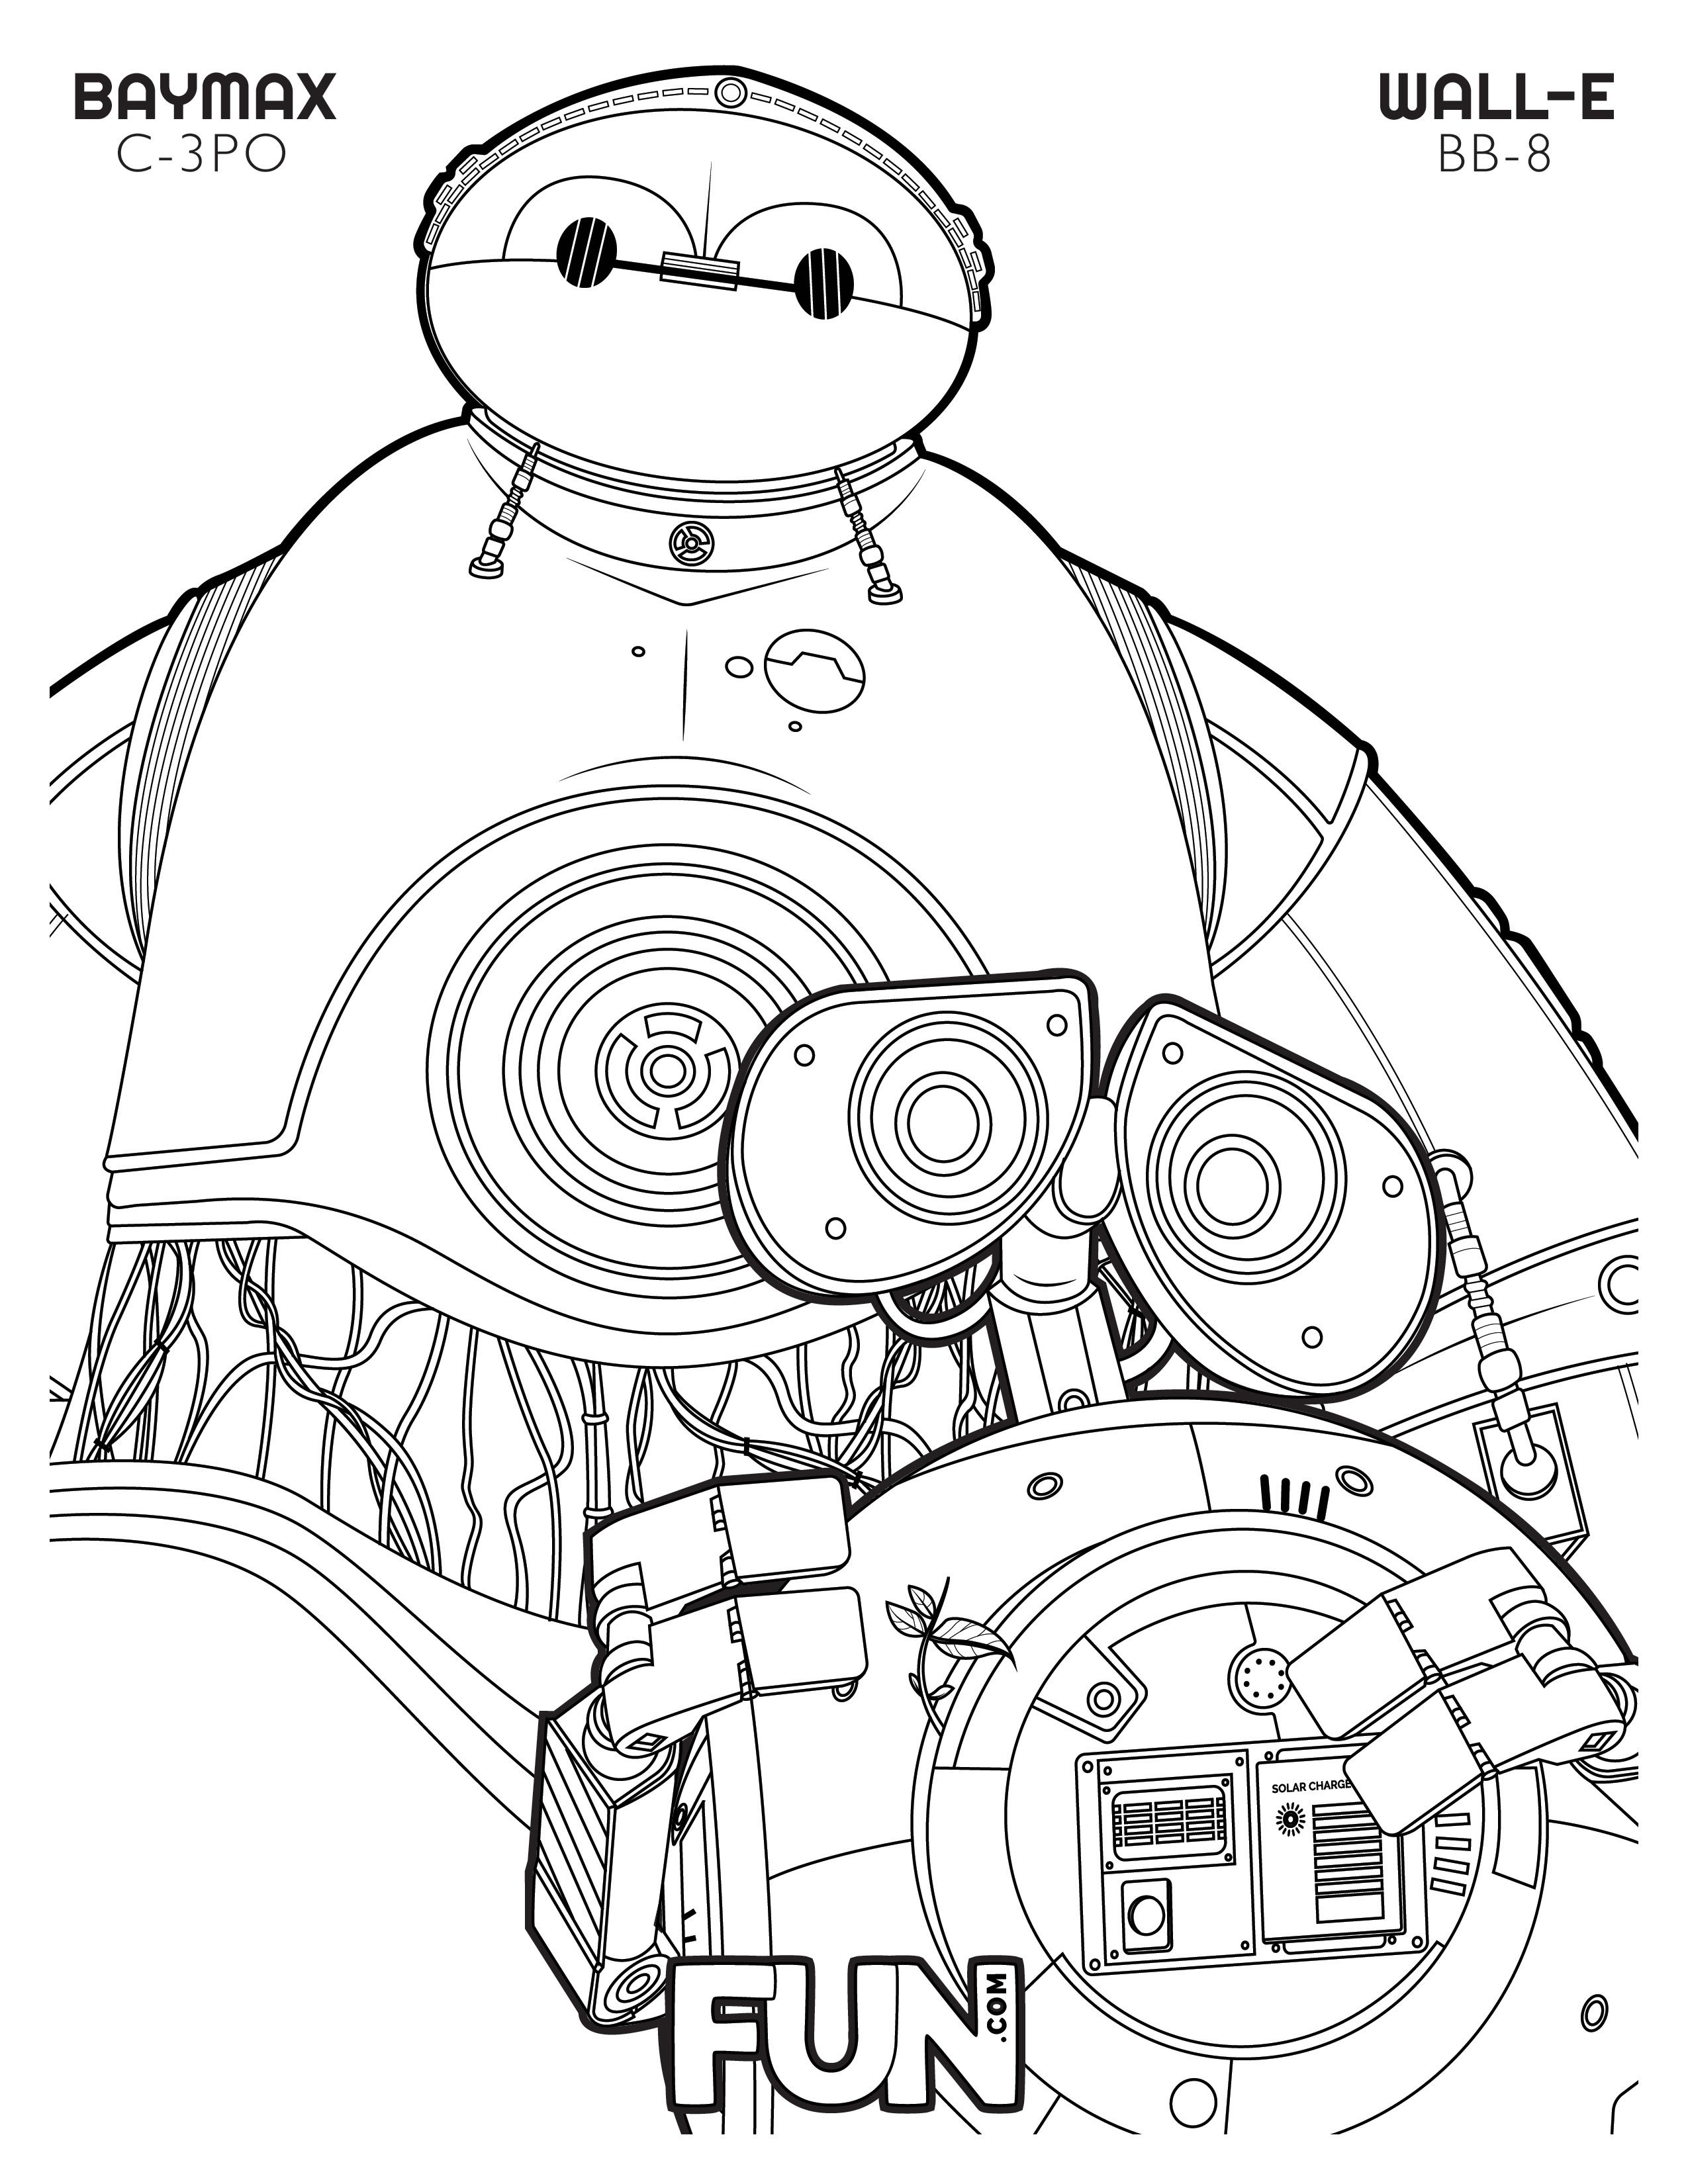 Mashup Disney Coloring Pages Disney Coloring Pages Printables Cartoon Coloring Pages Avengers Coloring Pages